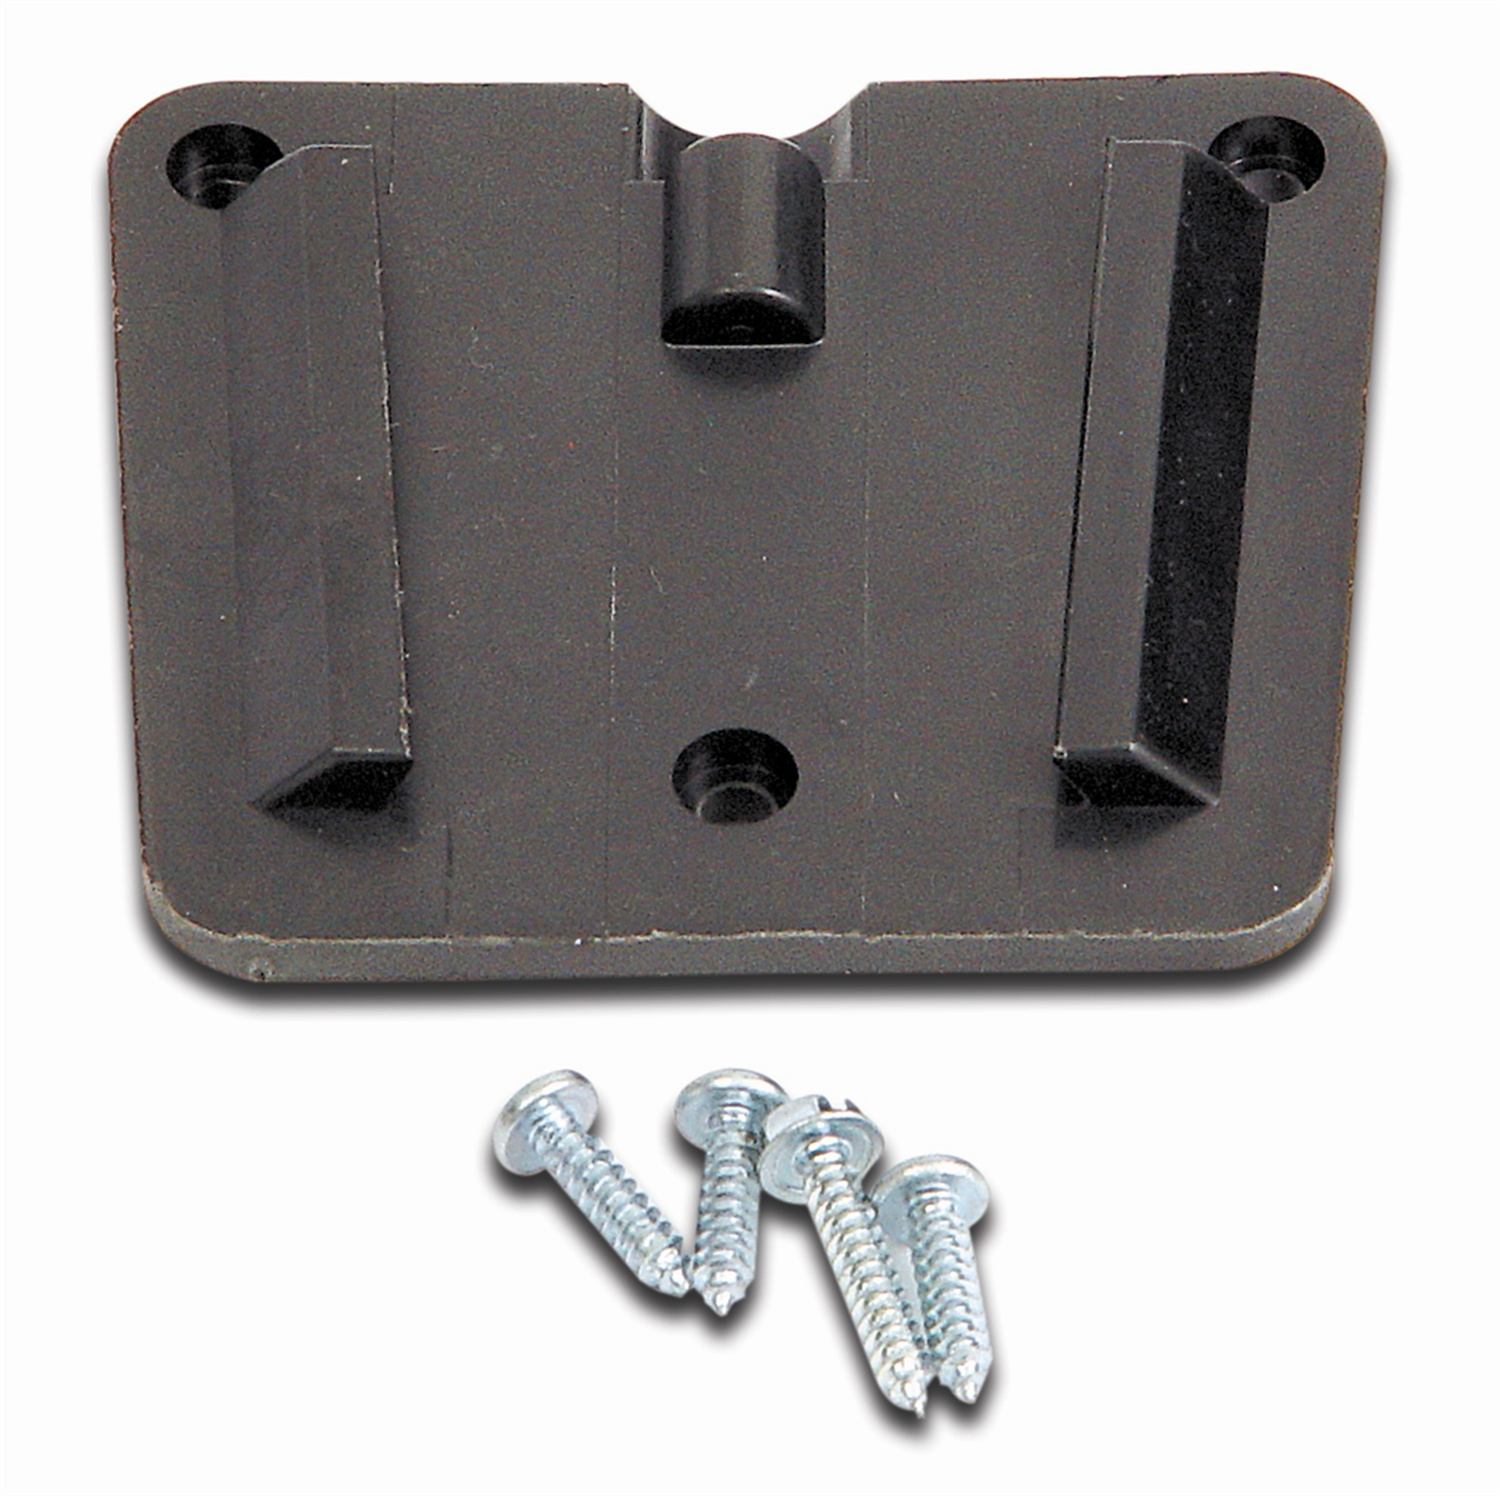 Mallory 29227 Ignition Coil Brackets at ATKHP.com